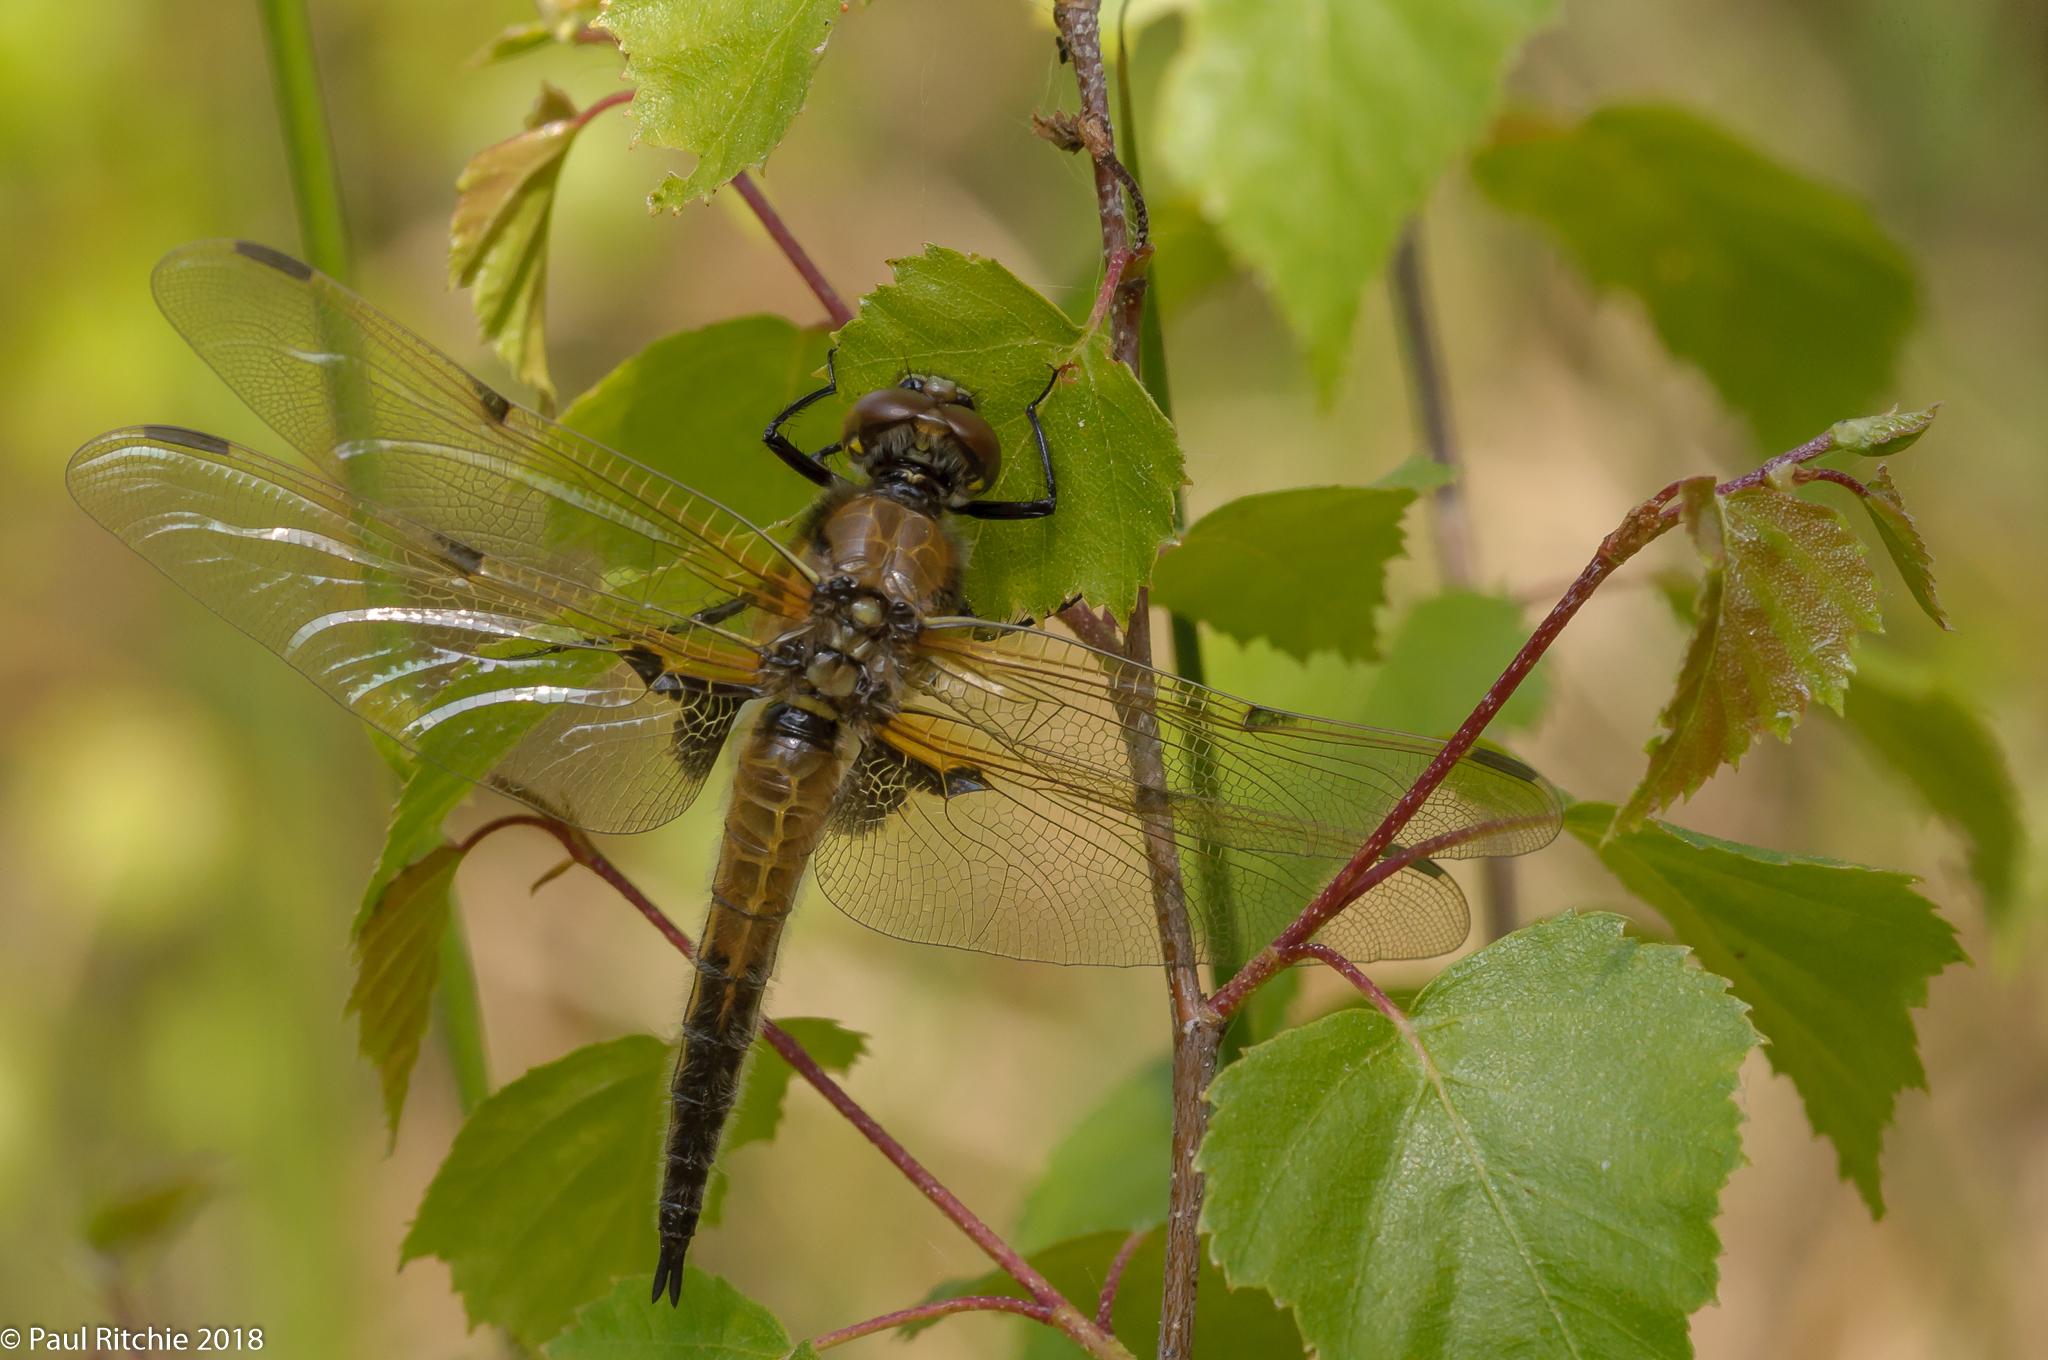 Four-spotted Chaser (Libellula quadrimaculata) - teneral male